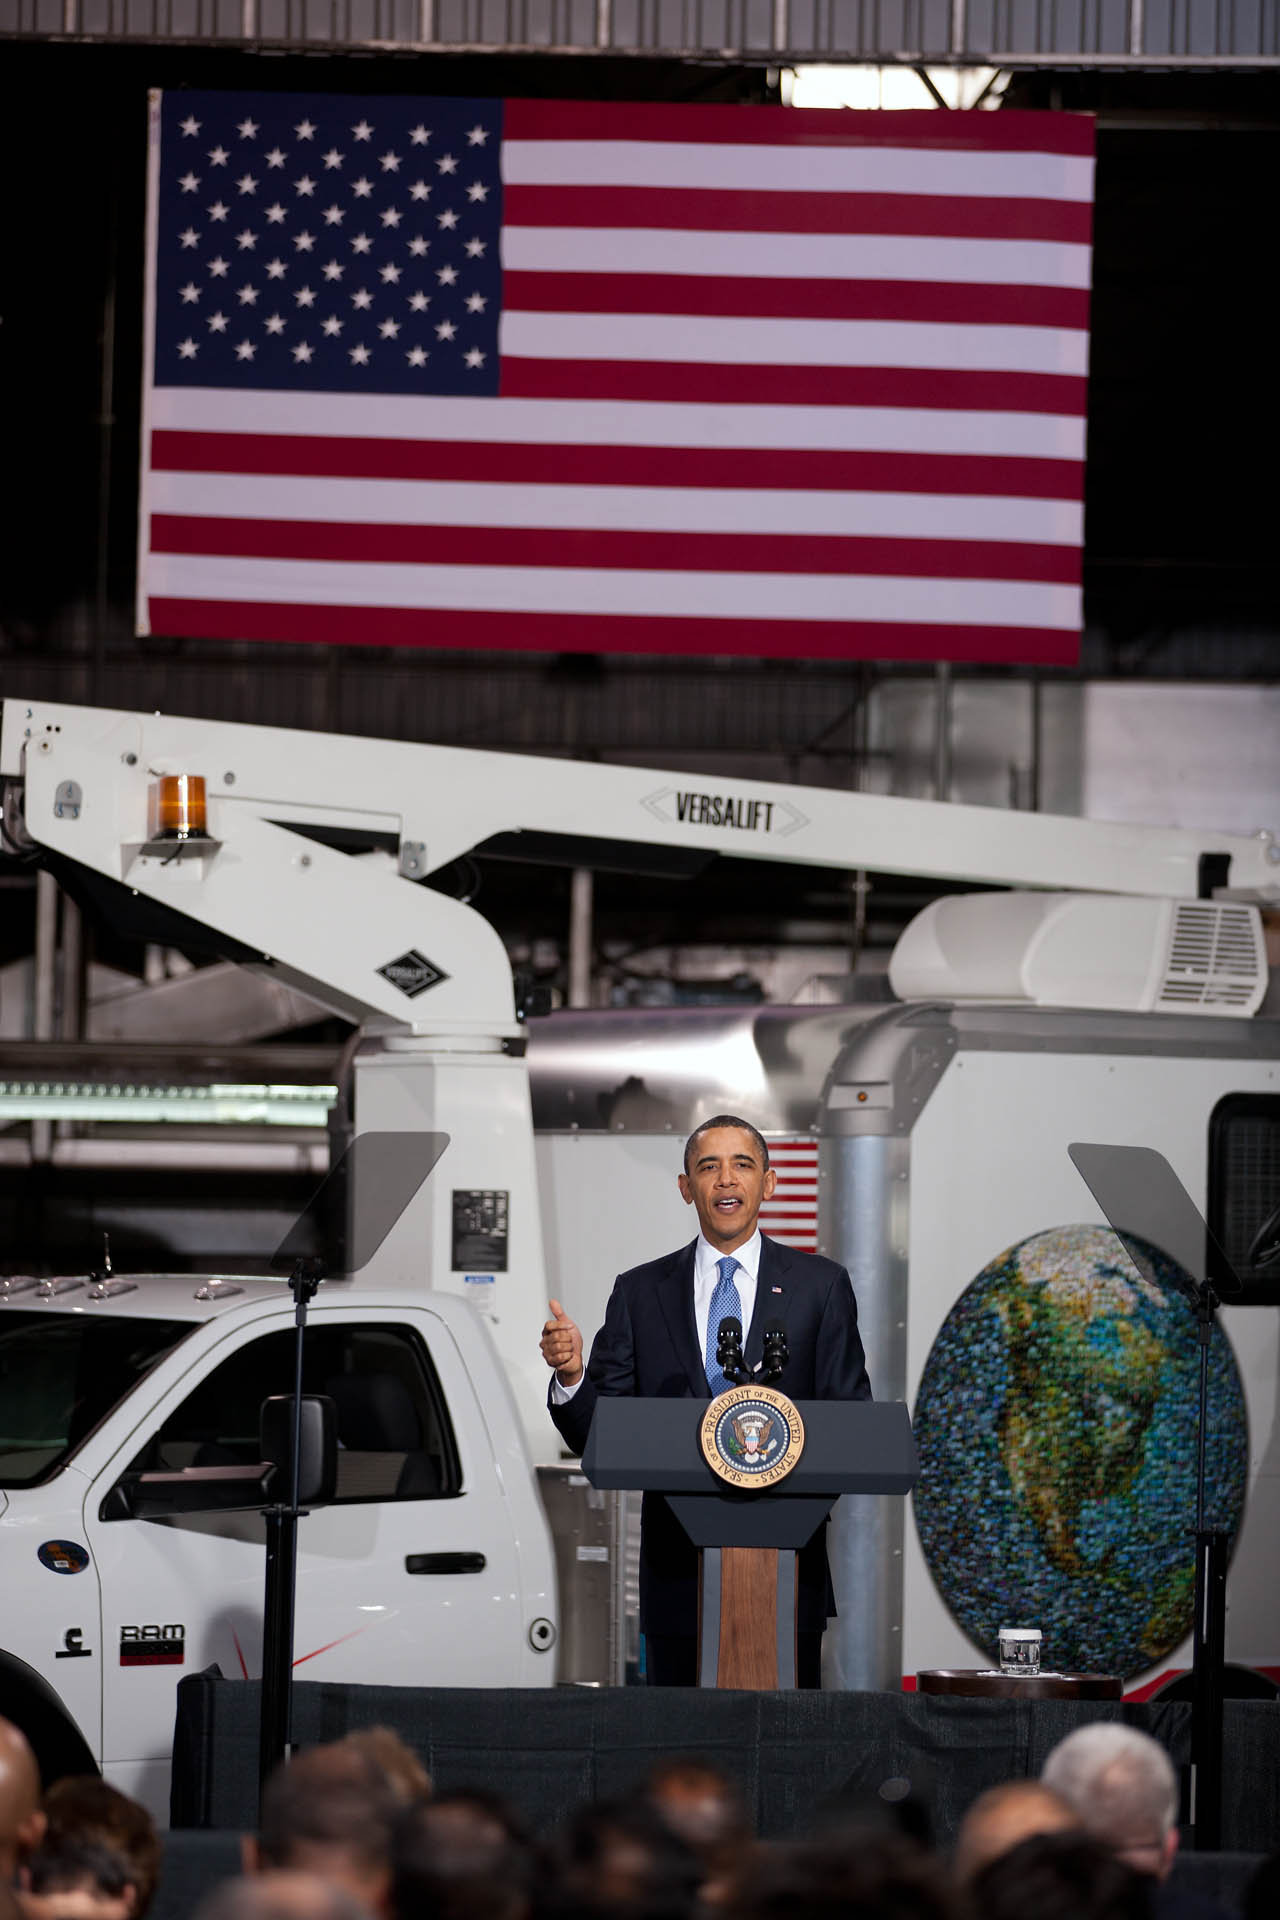 President Obama at UPS on Green Fleets